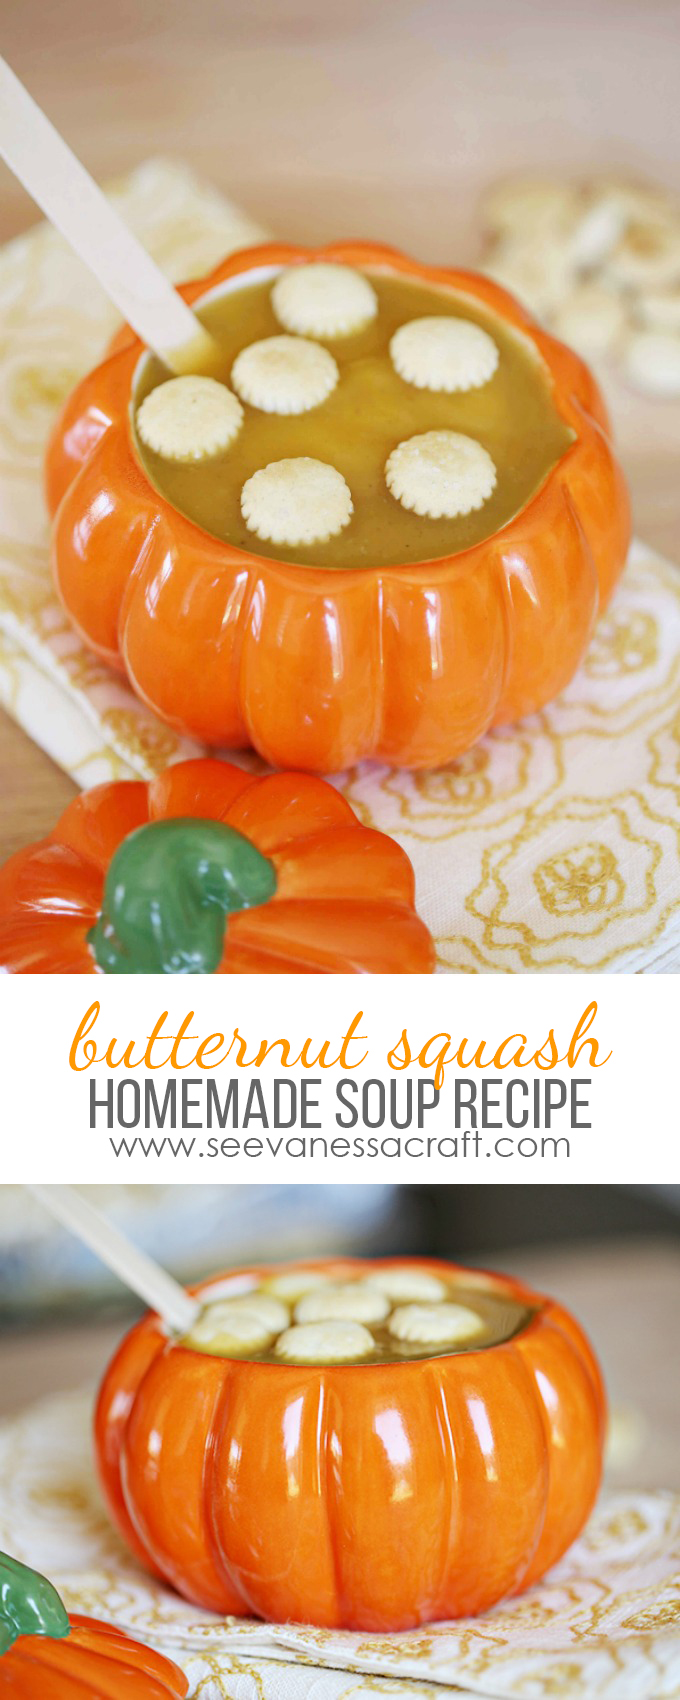 butternut-squas-soup-recipe-in-a-pumpkin-copy